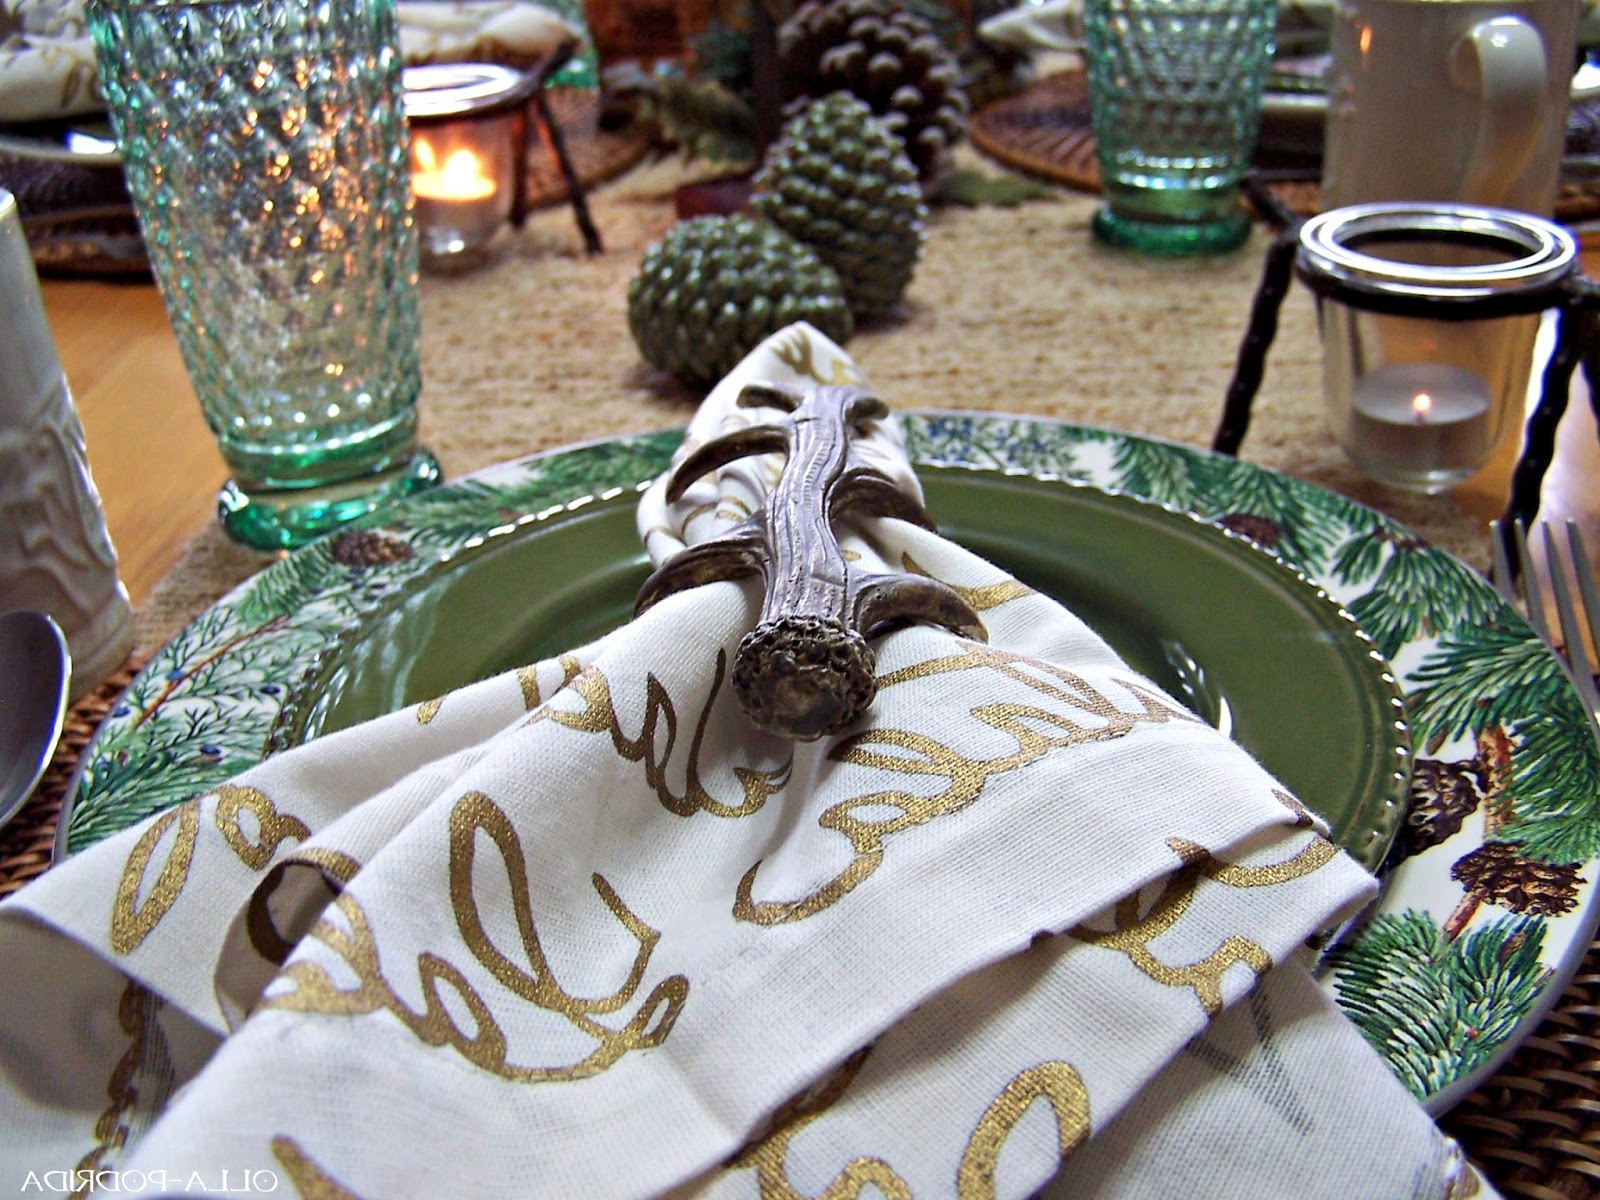 Olla Podrida: Dining In The Northwoods Throughout Latest Northwoods 3 Piece Dining Sets (View 18 of 25)